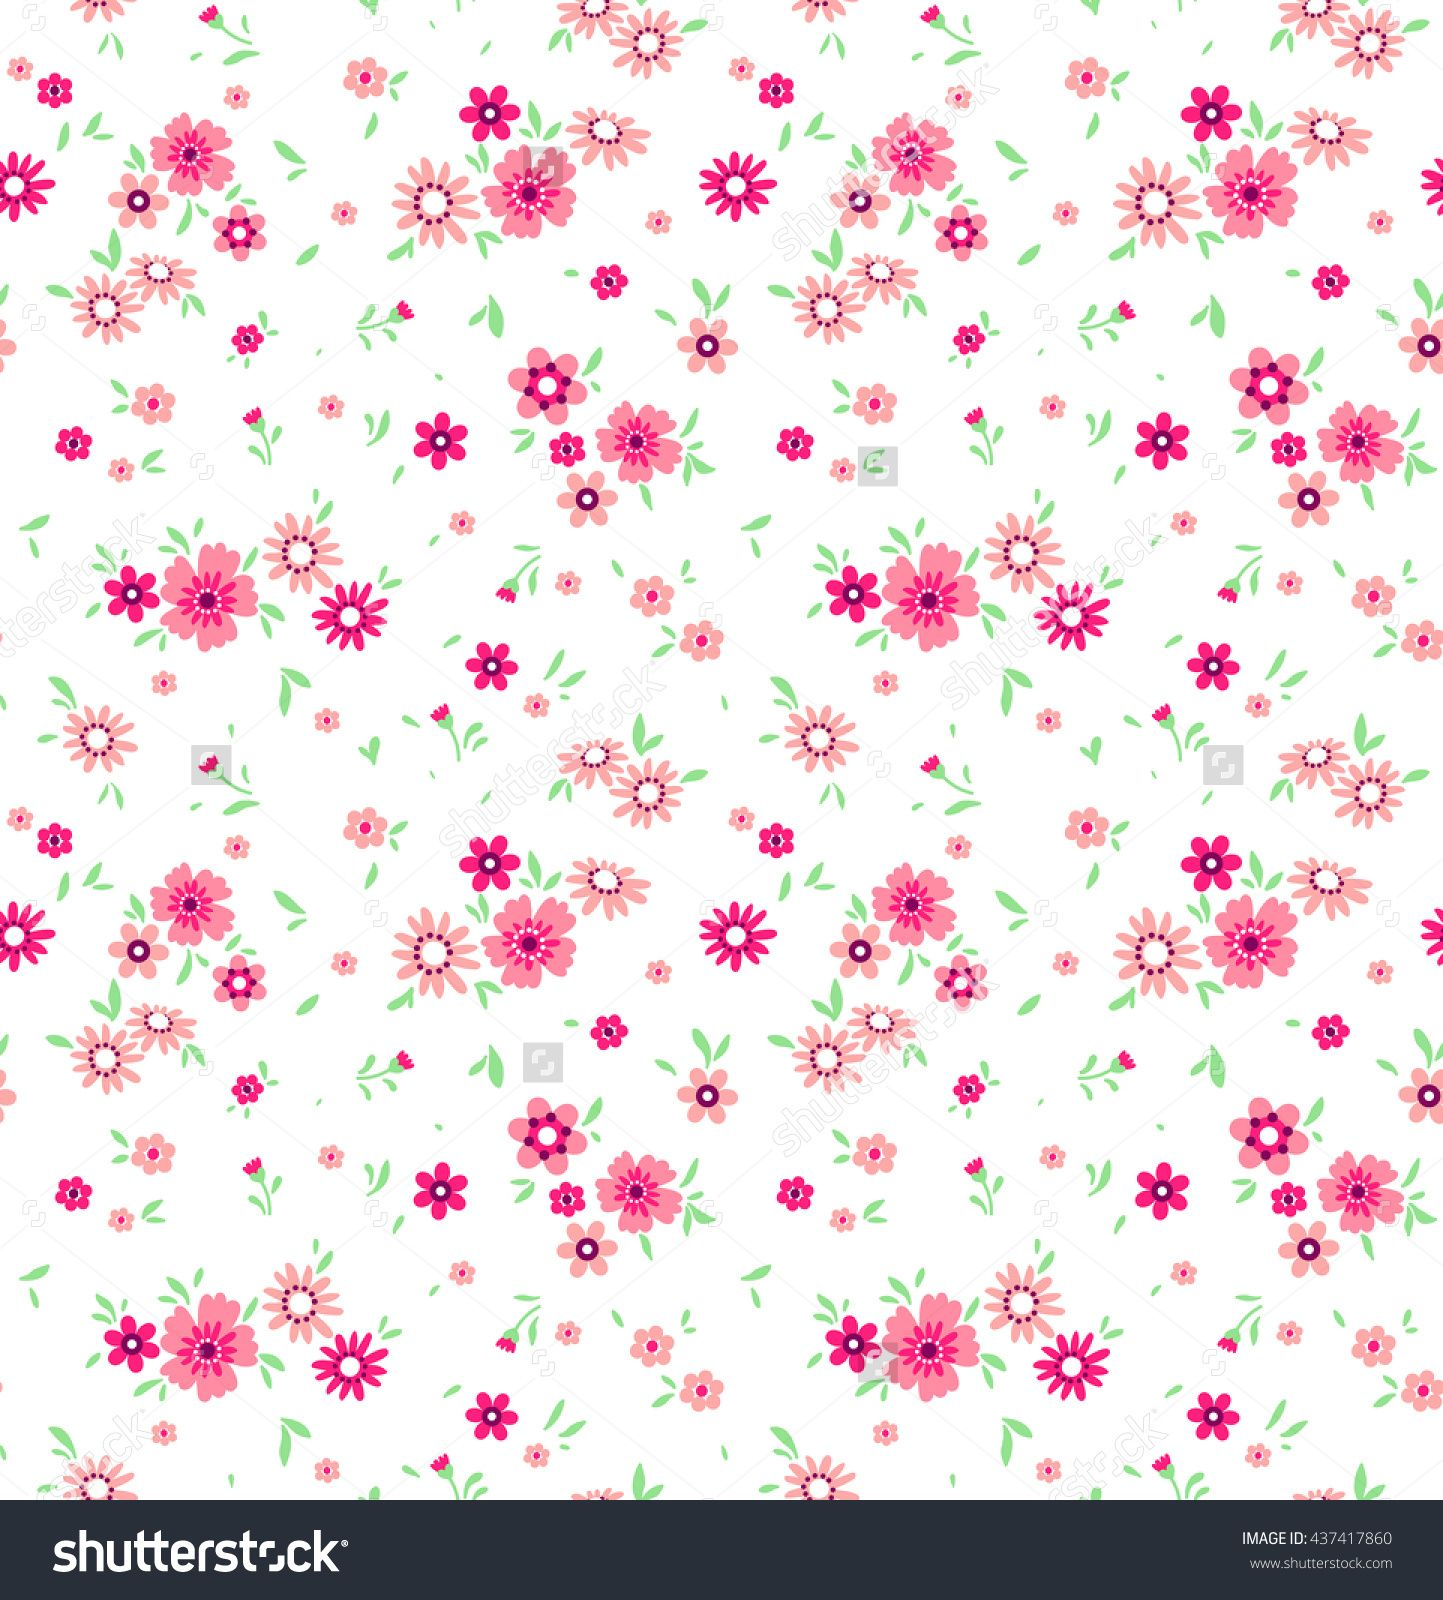 cute pattern in small flower small pink flowers white